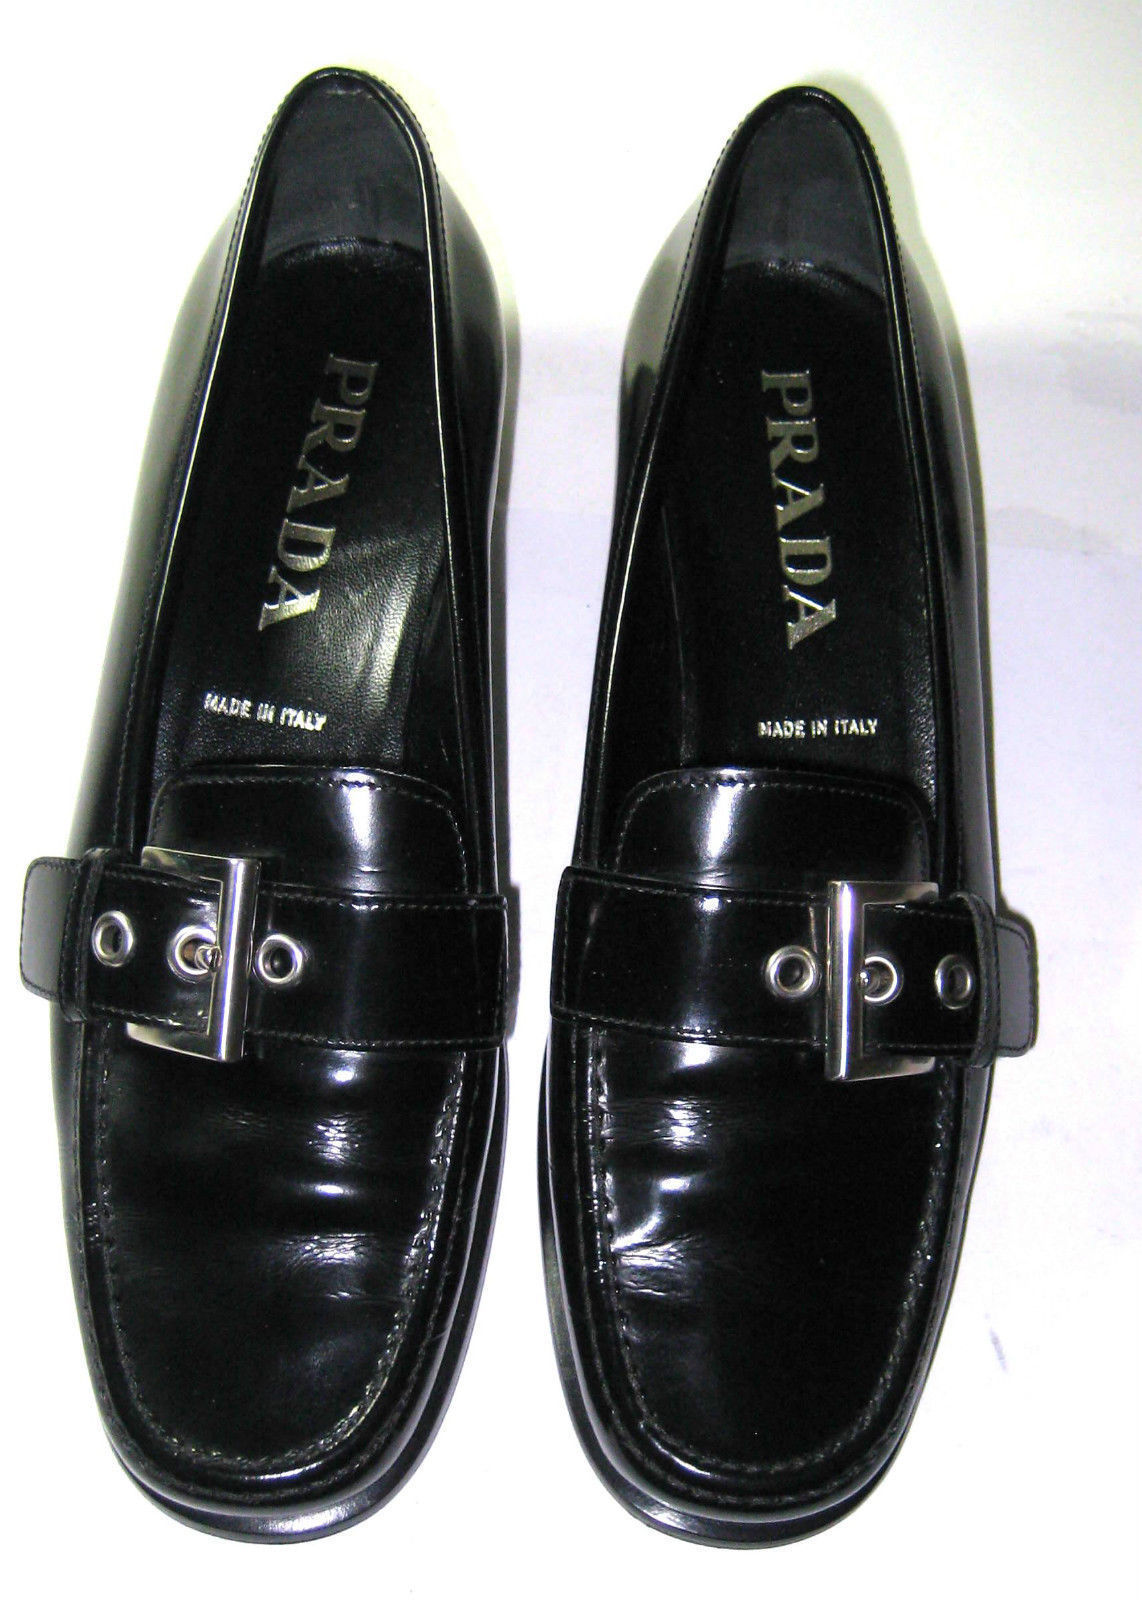 $380 PRADA Sz 36 US 6 Black Leather Silver Buckle Exquisite Italy RARE